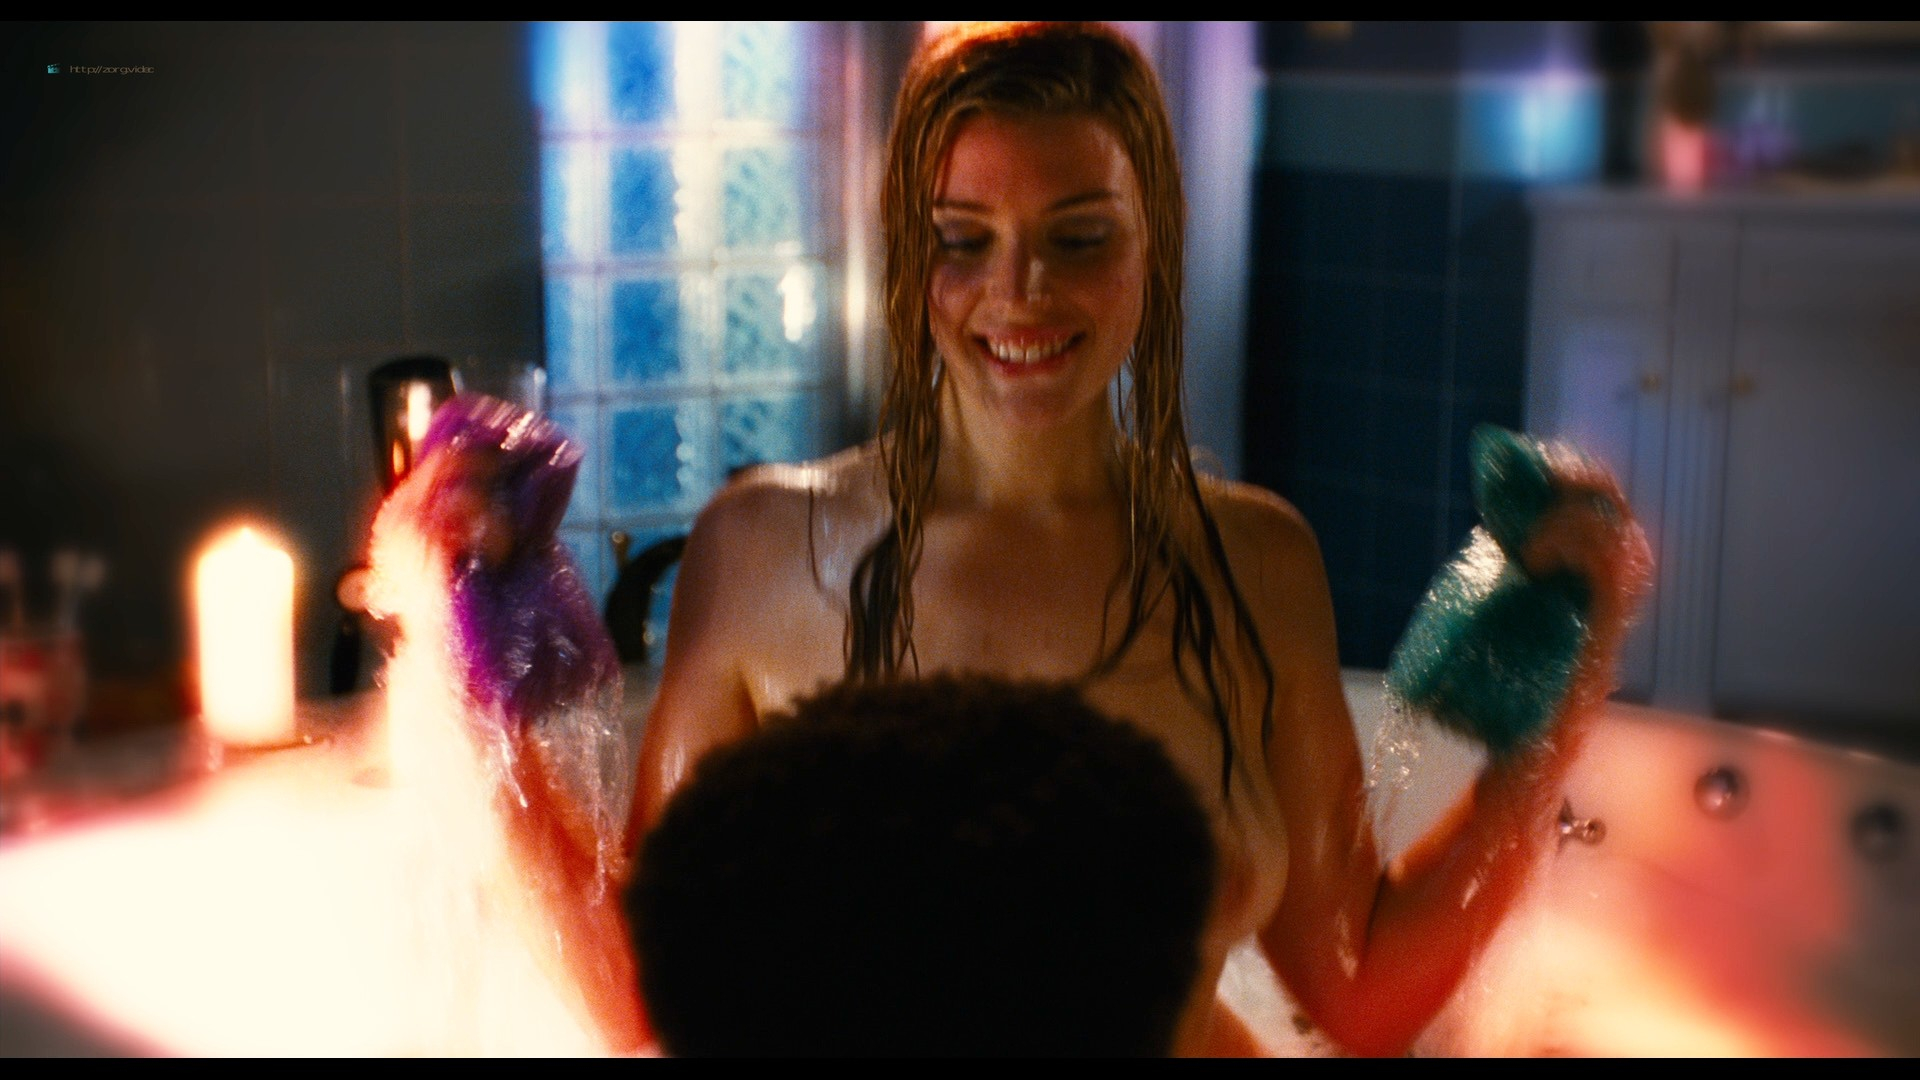 Jessica Pare nude Crystal Lowe topless Lyndsy Fonseca hot and sexy - Hot Tub Time Machine (2010) HD 1080p BluRay REMUX (14)